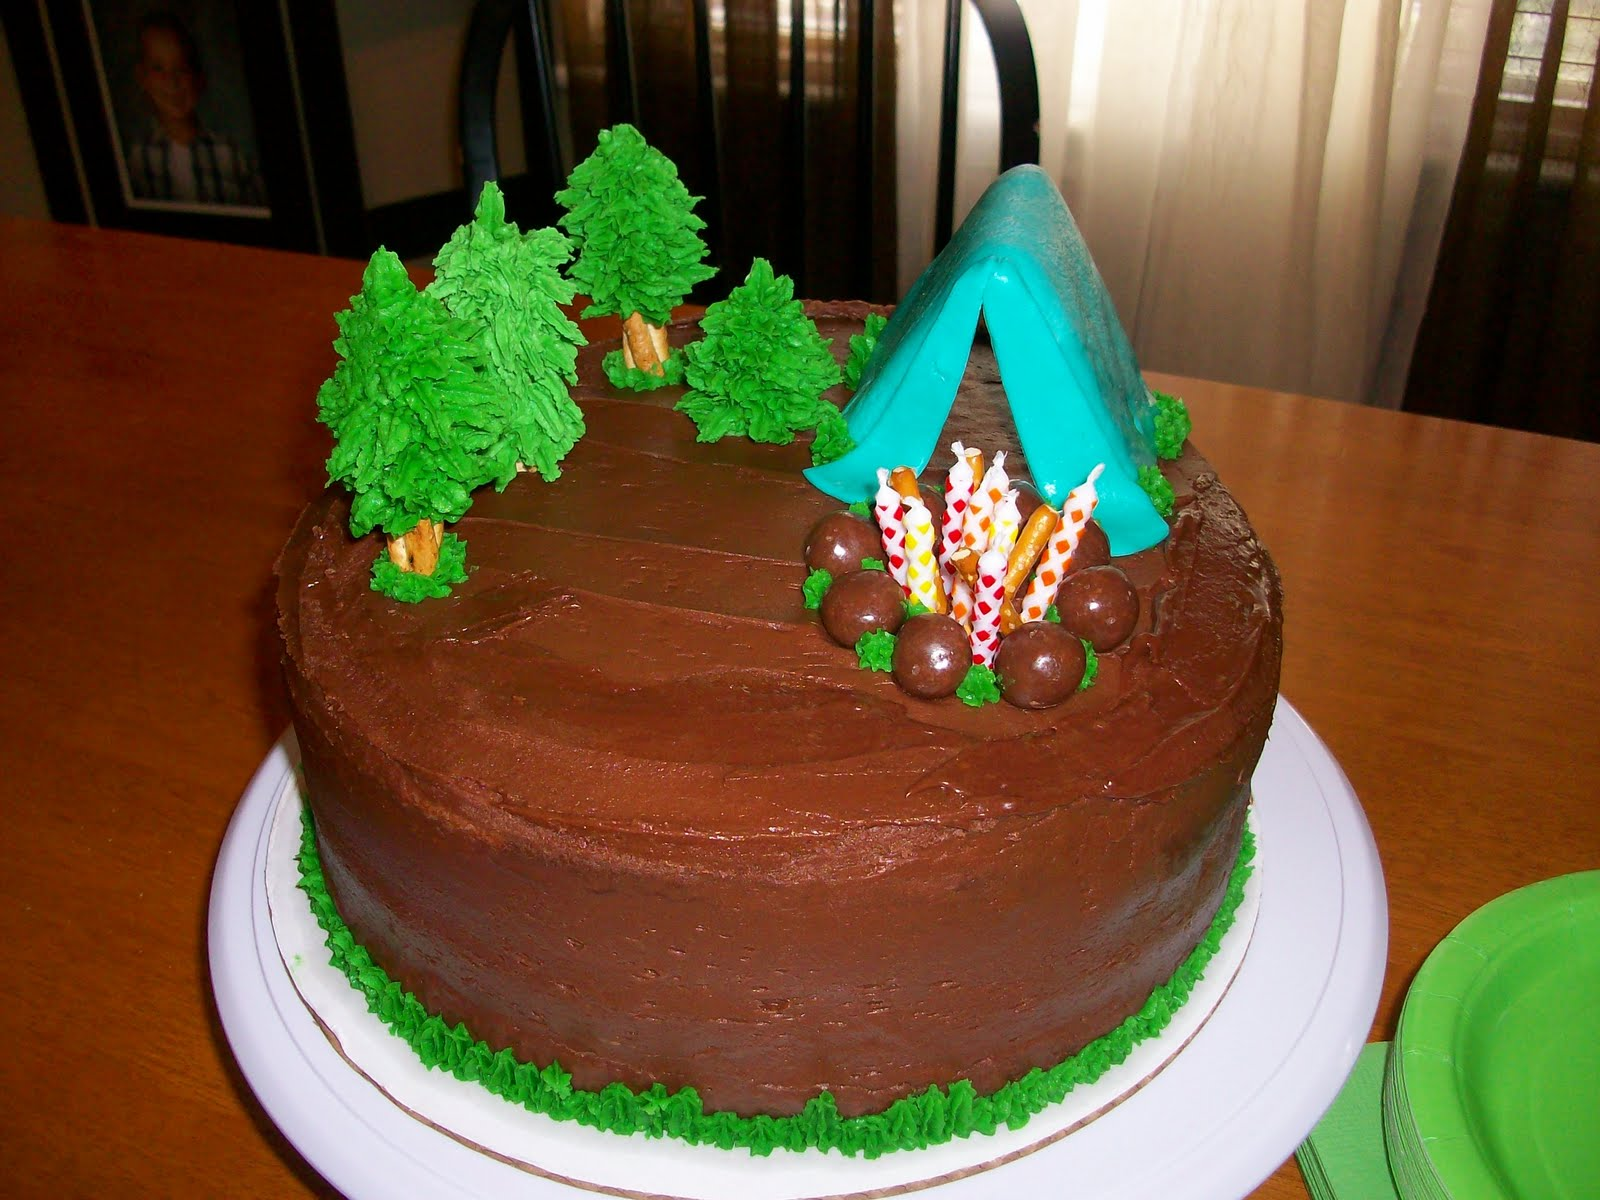 This Was Keldin 9th Birthday Cake We Had A Camping Themed Party Which Lot Of Fun